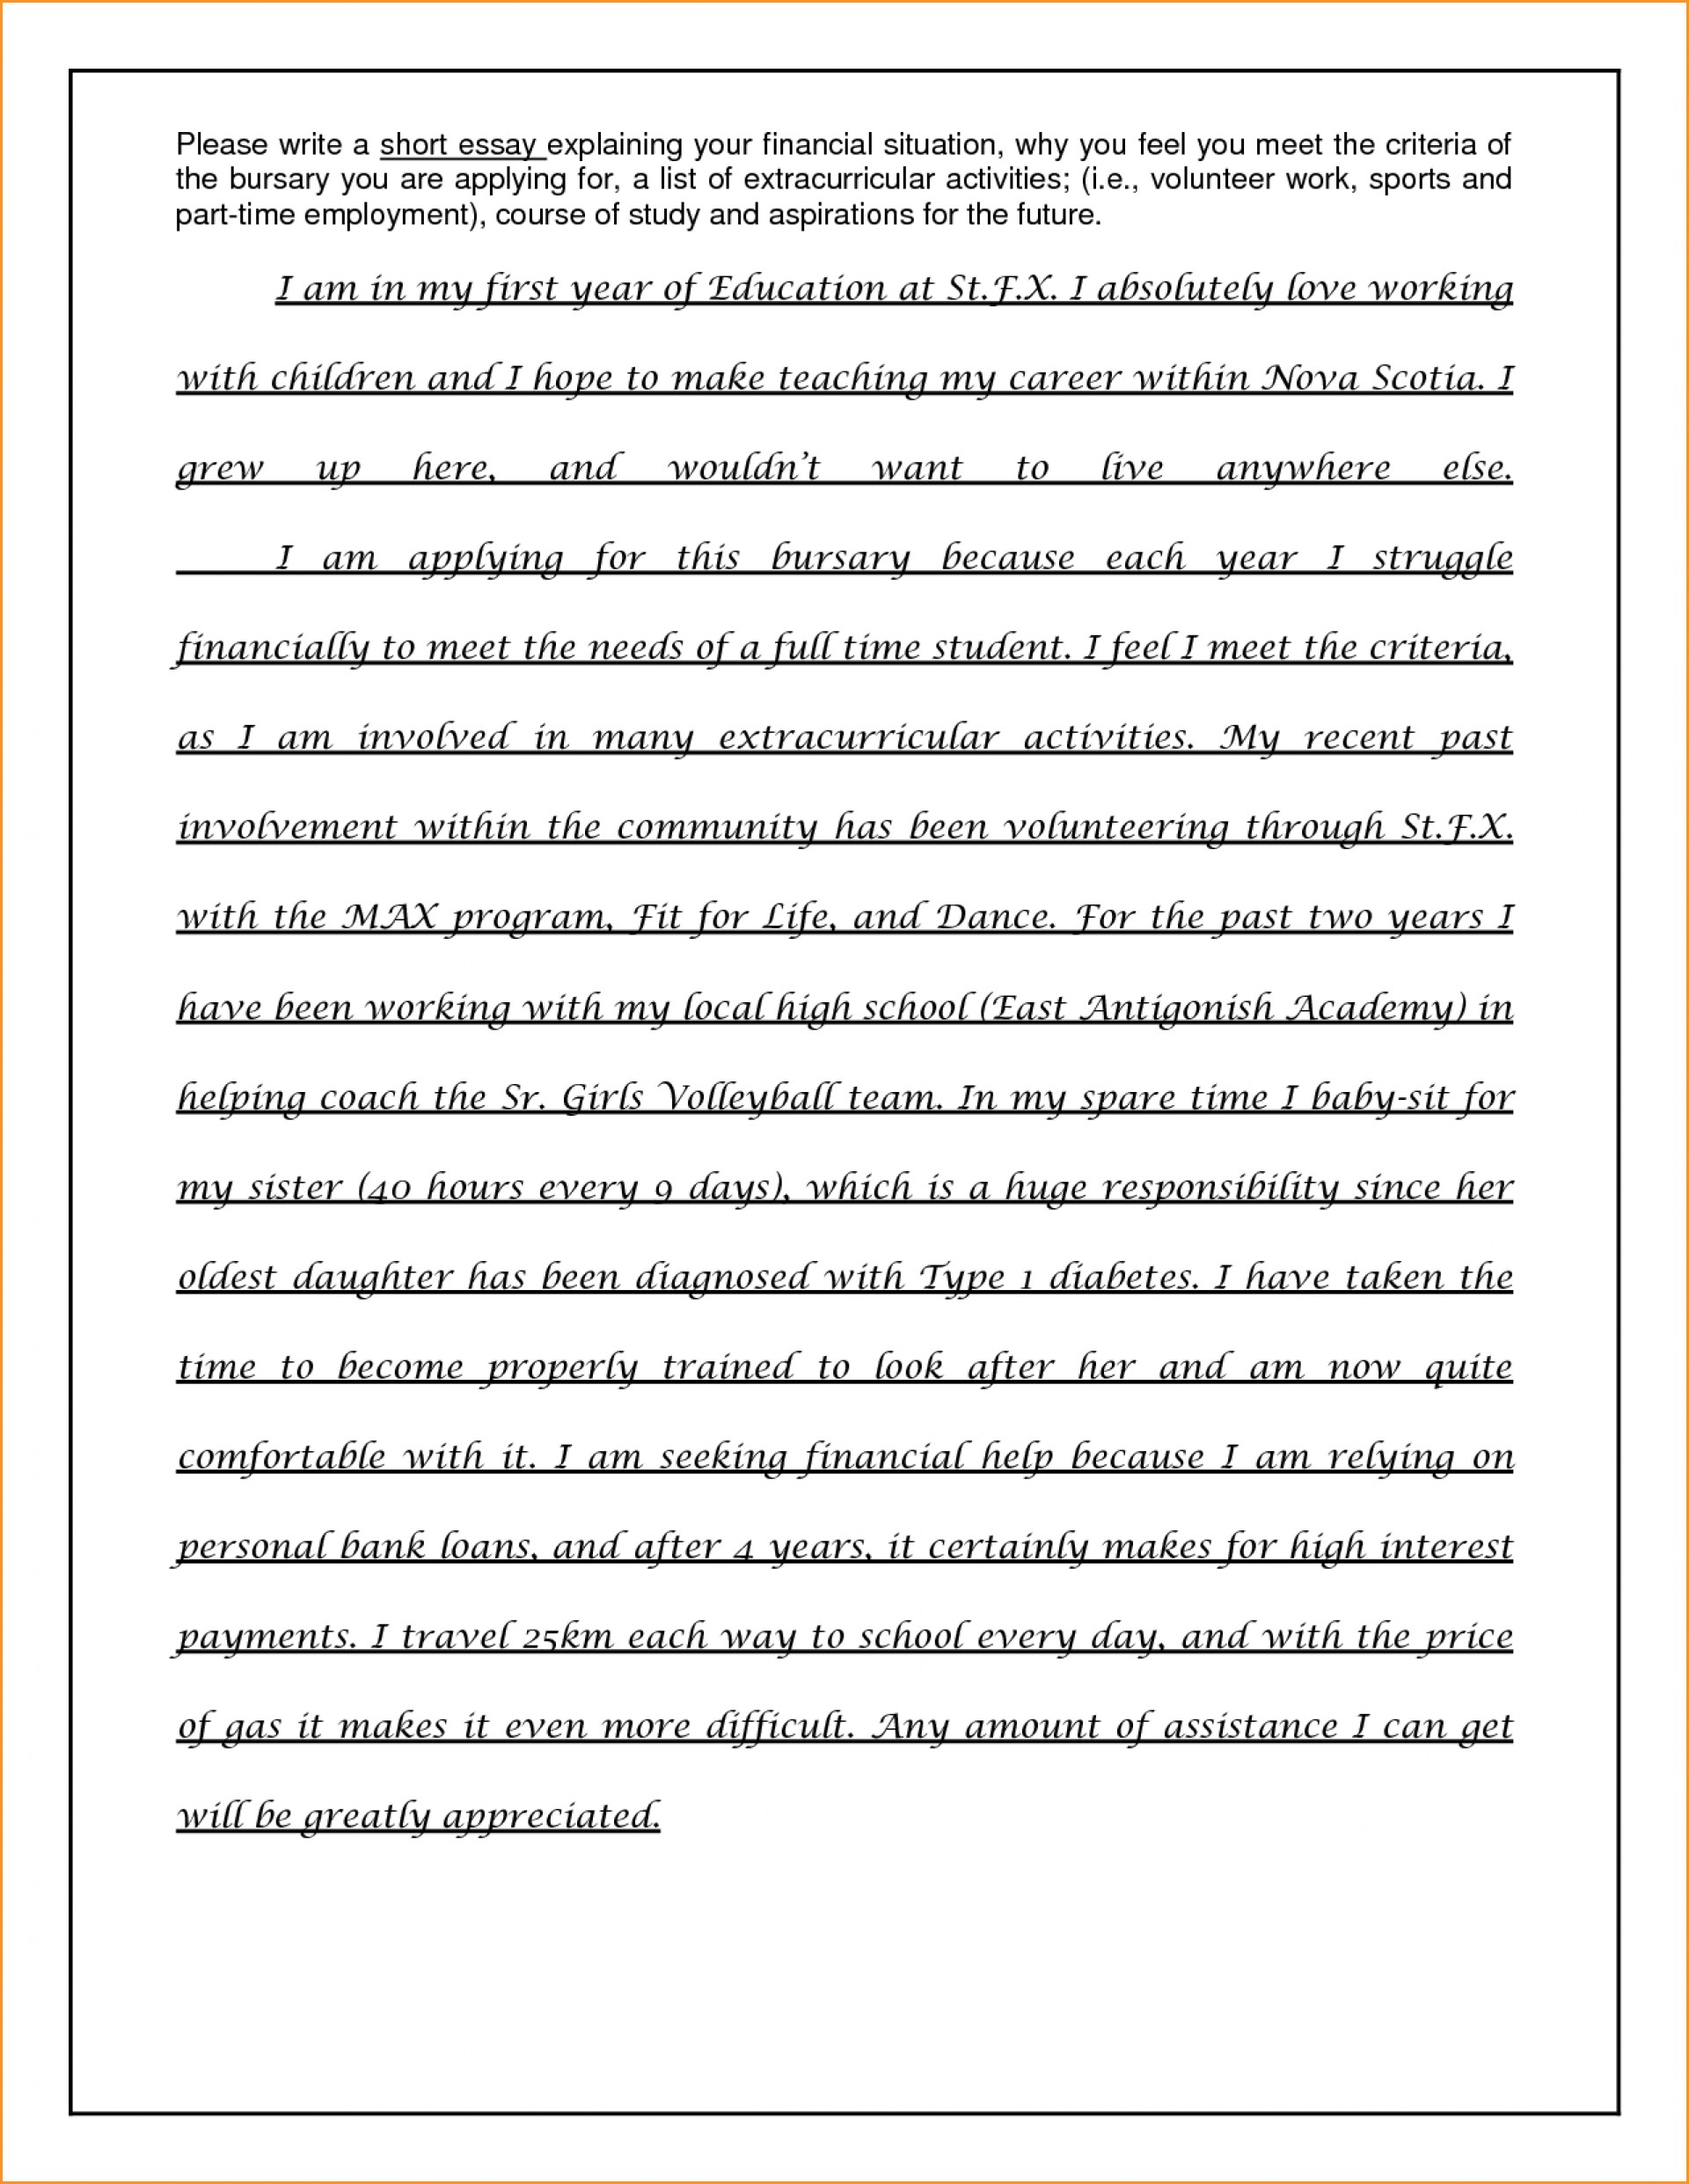 003 Essay Example No Scholarships For College Students High School Seniors Scholarship Examples Financial Need Free Required Freshmen Needed Awful 2019 1920